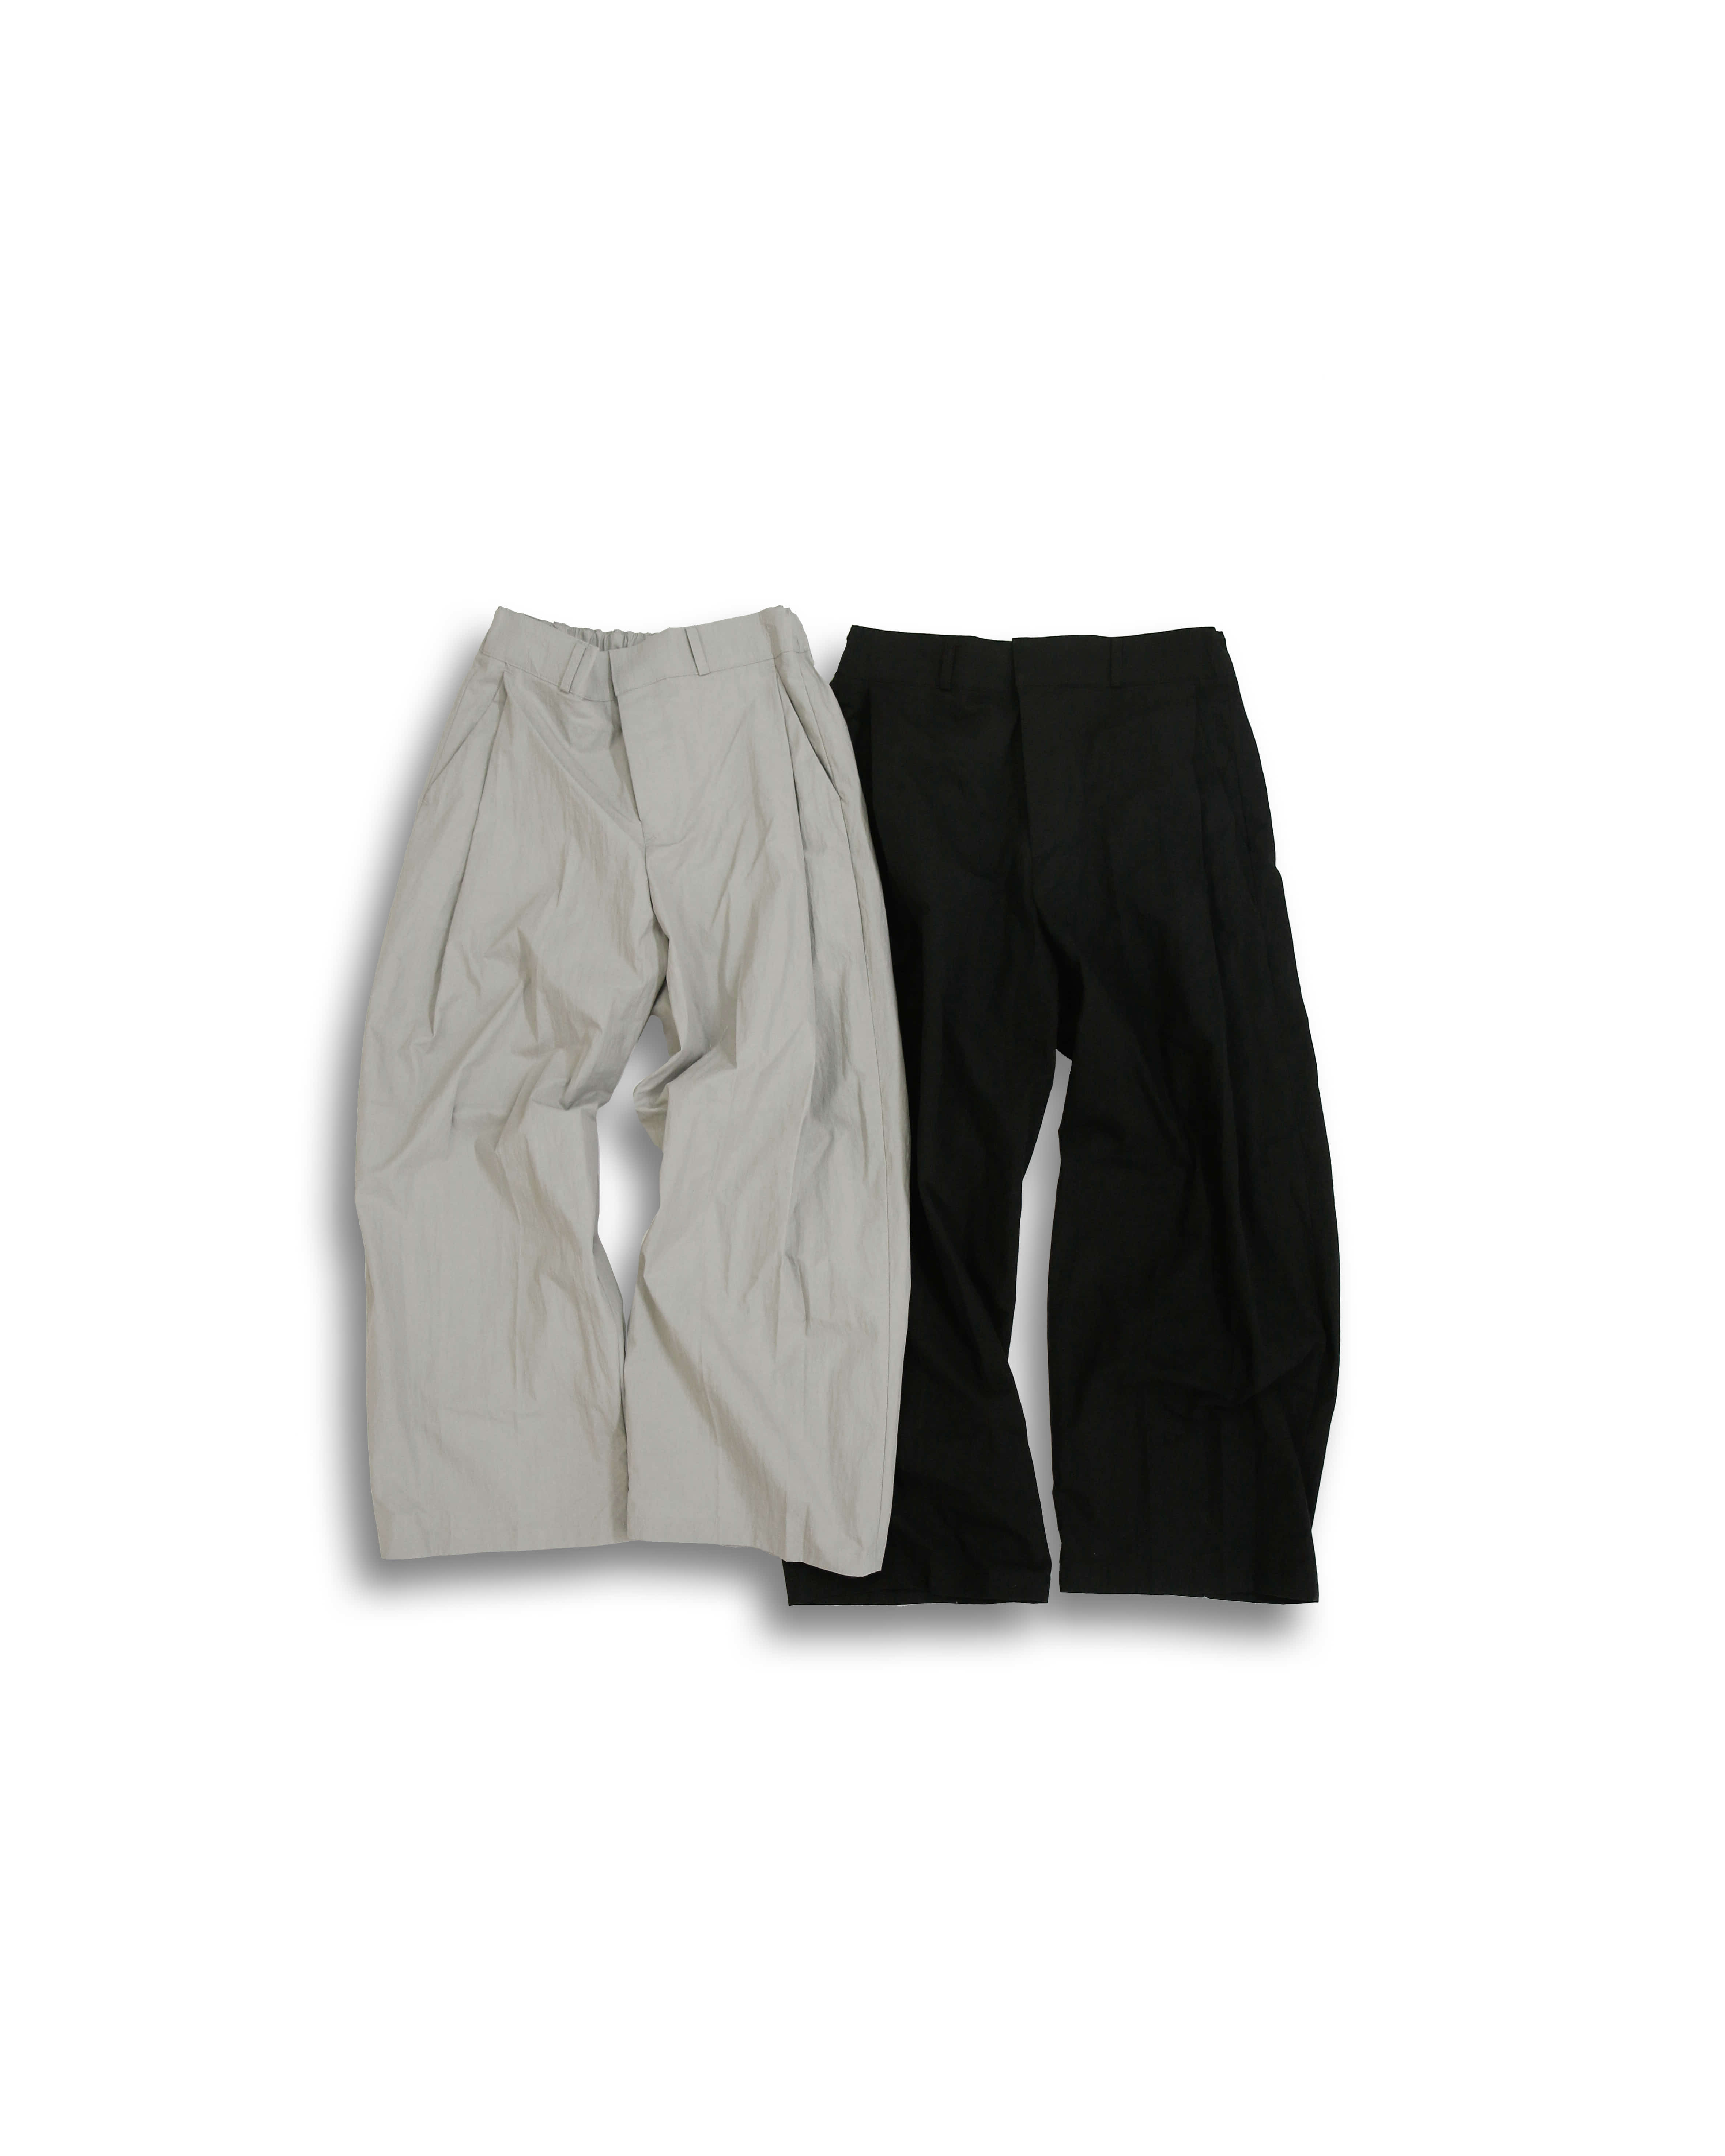 Curved Wide Slacks (Black/Gray)